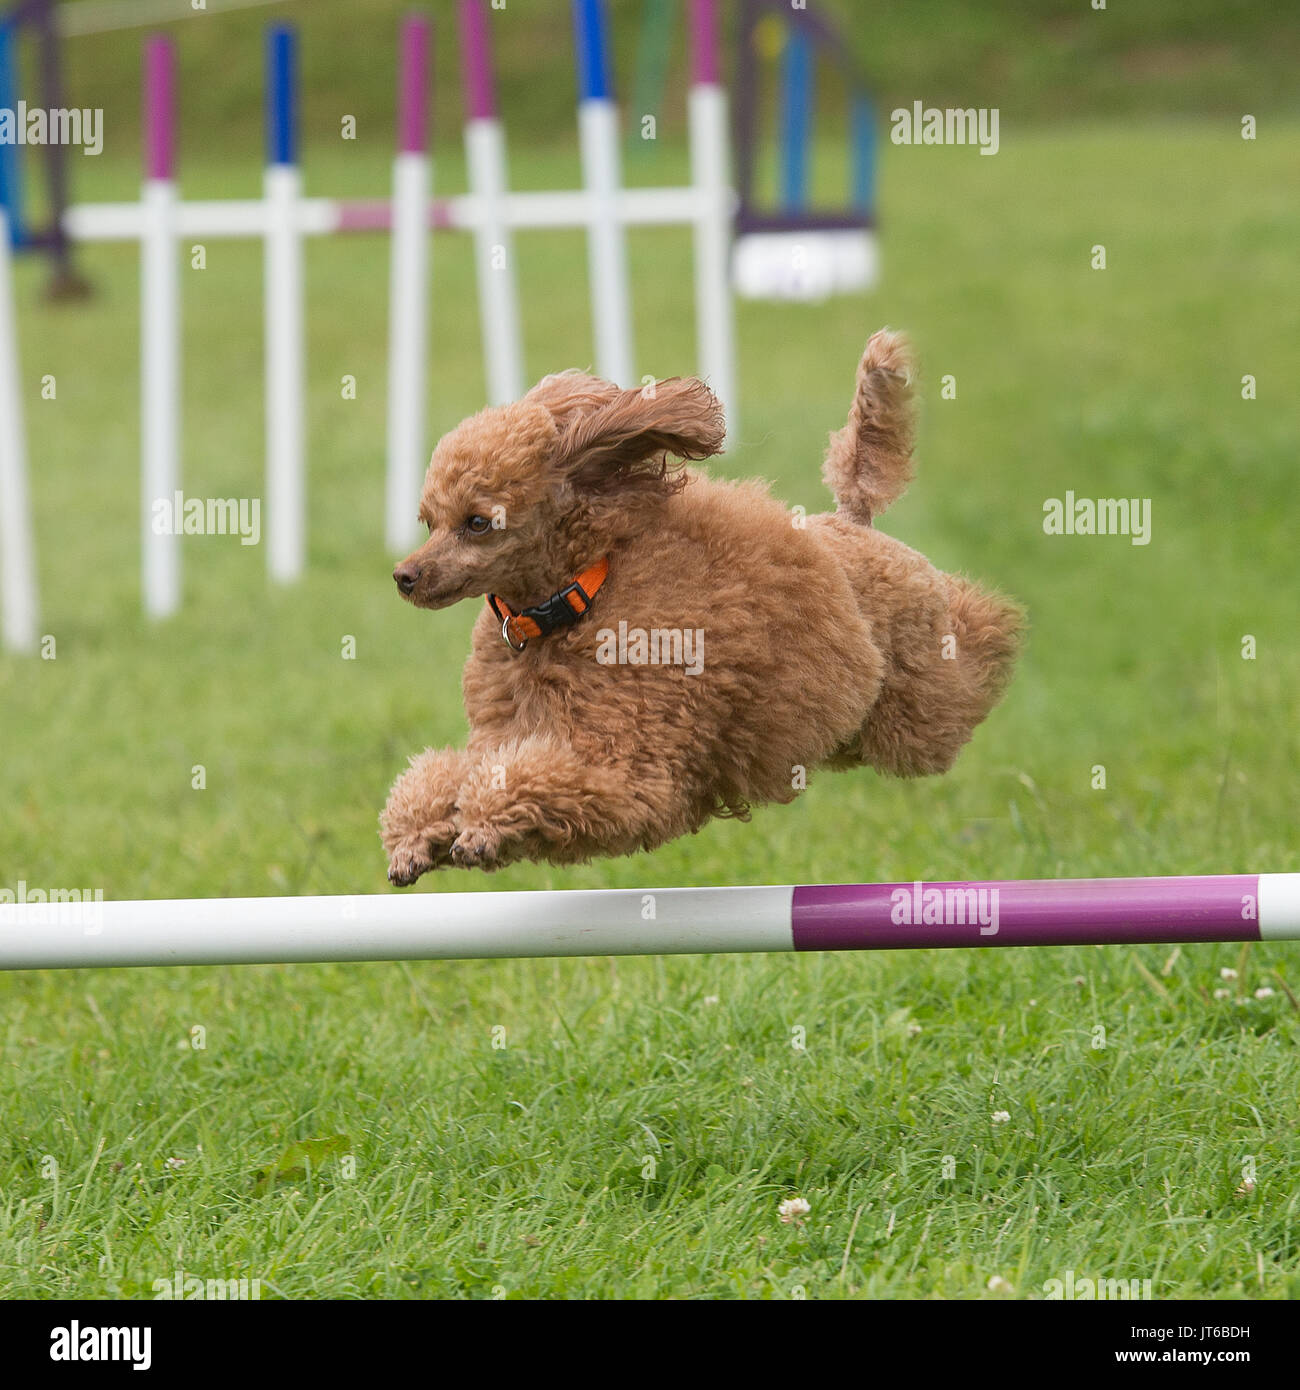 poodle dog competing in agility - Stock Image